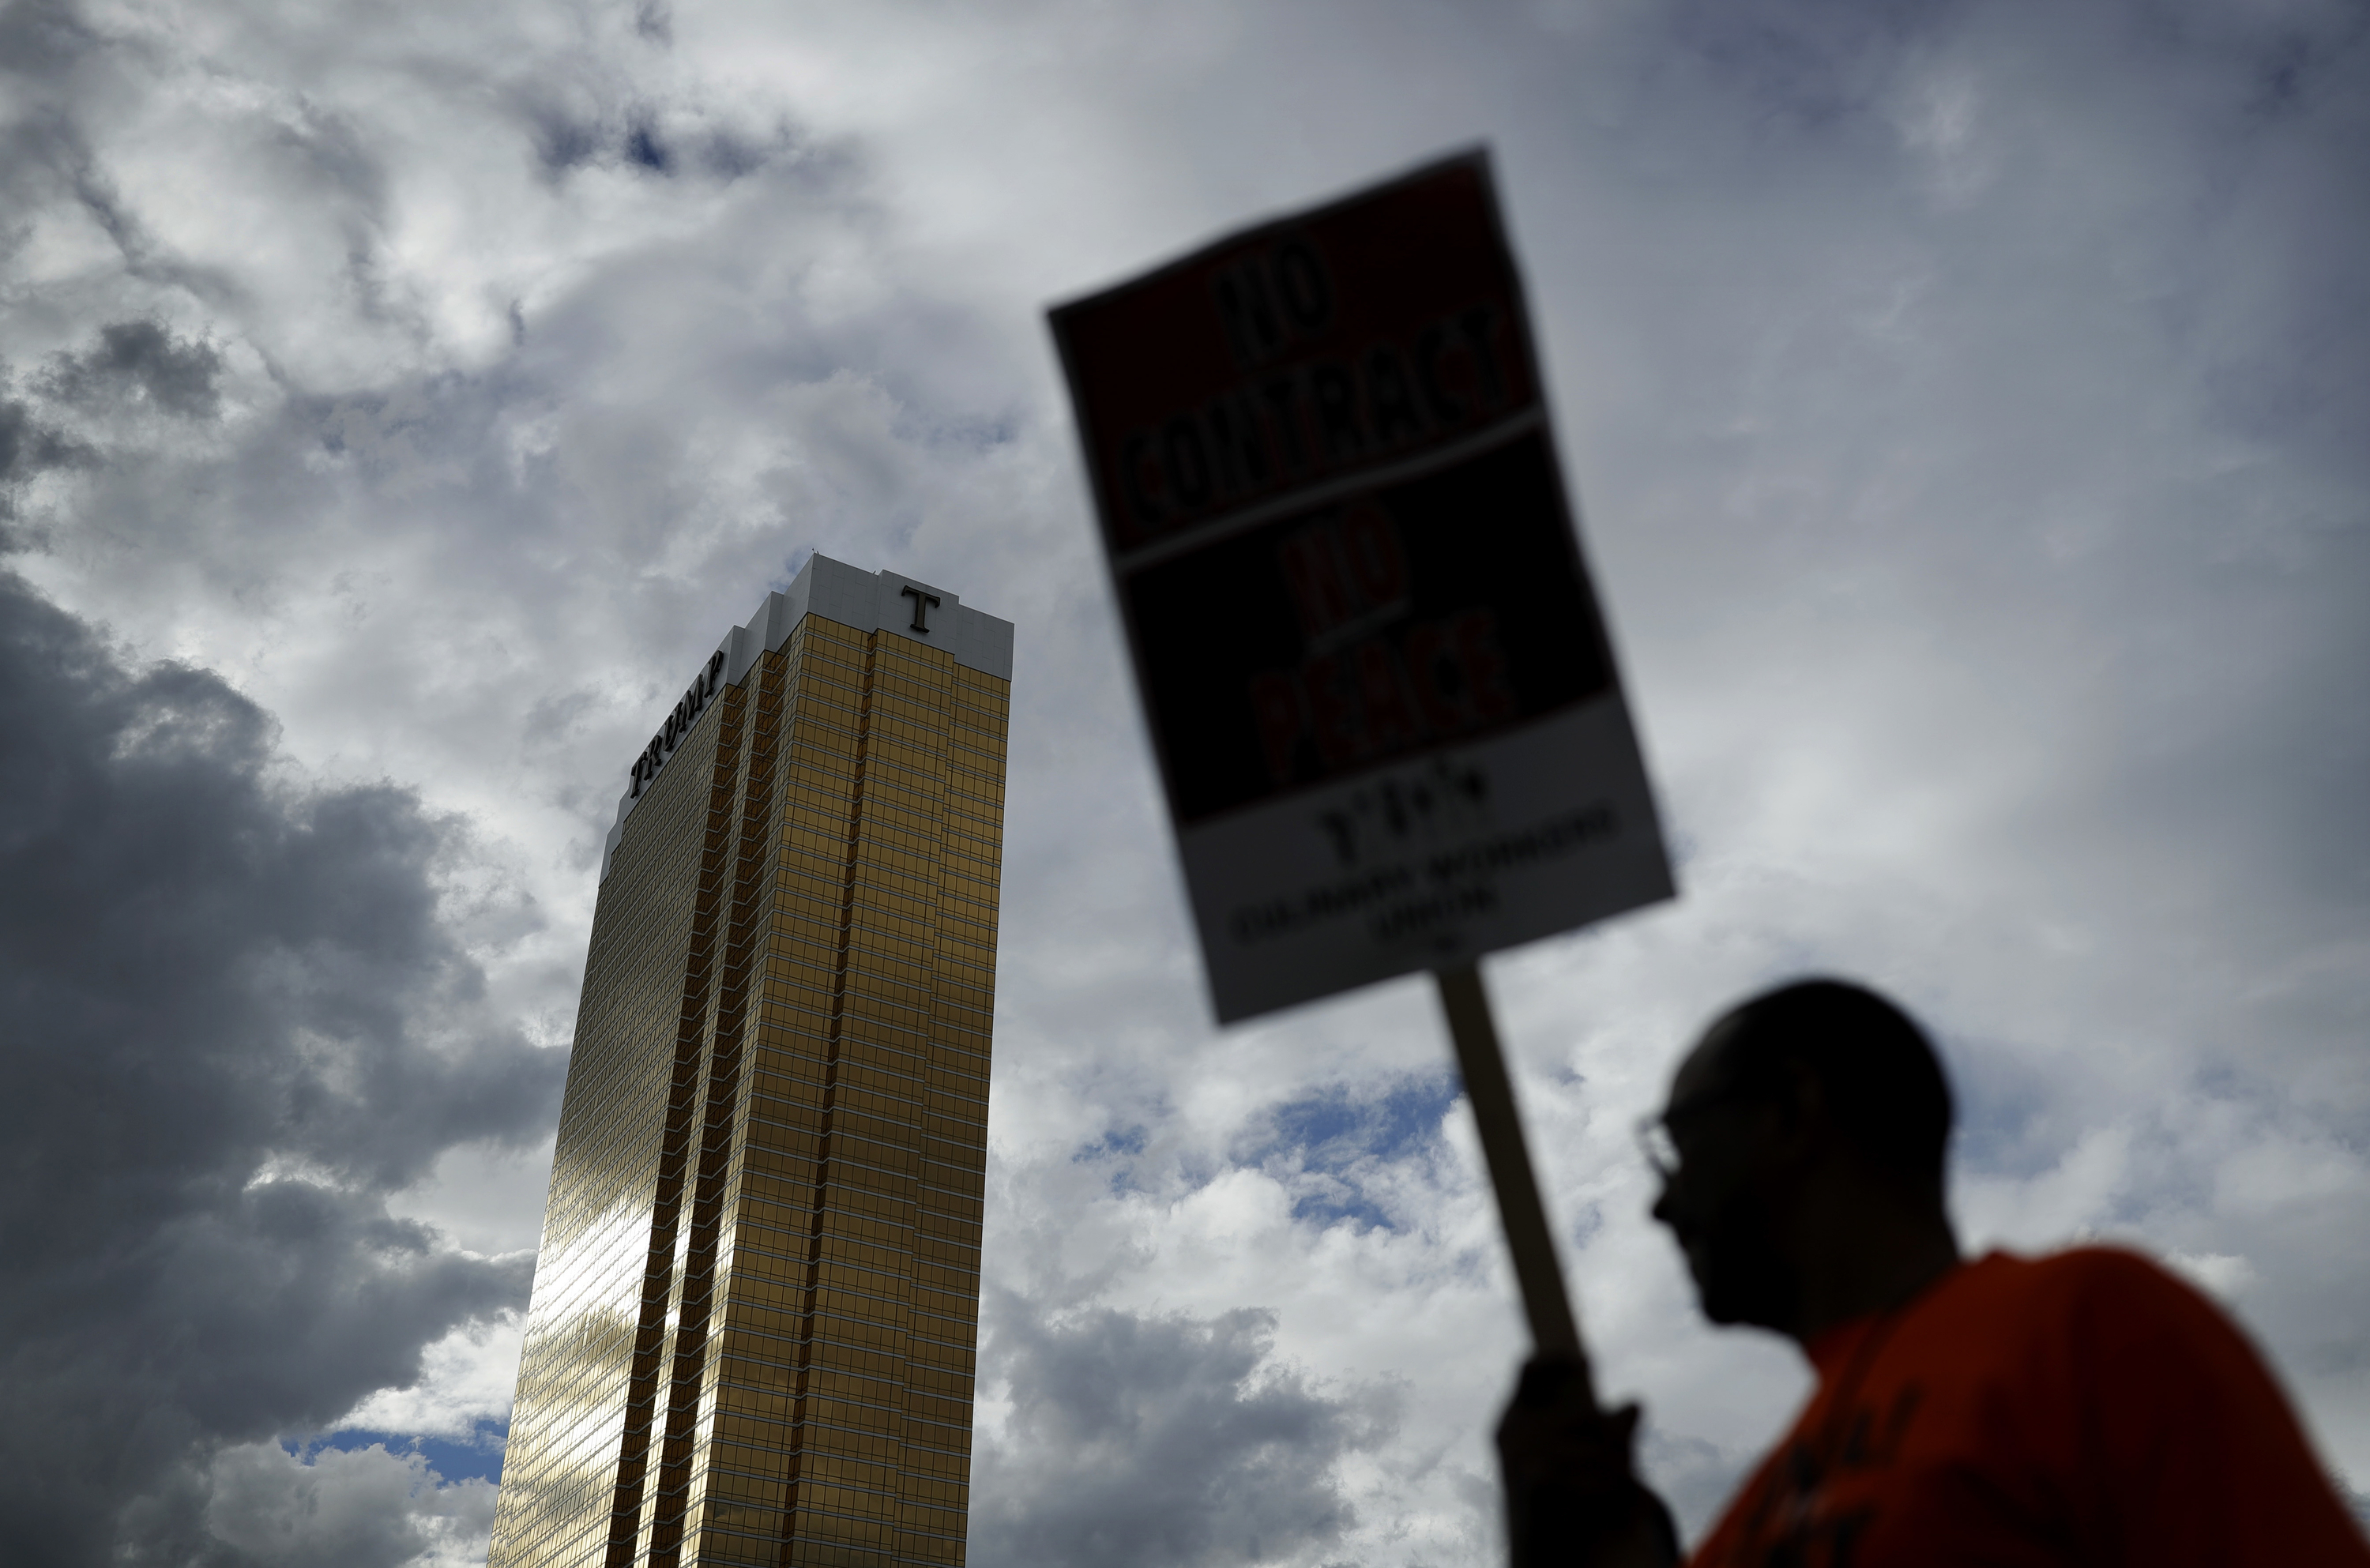 FILE - In this Sept. 21, 2016 file photo Laborers' International Union of North America members and Culinary Union members protest outside of the Trump International hotel in Las Vegas. Inflamed by Trump's candidacy, organized labor groups including the heavily immigrant Culinary Union are in the thick of an aggressive get-out-the-vote campaign in Nevada. The election comes just as the Culinary Union engages in a labor dispute with management at Trump's Las Vegas hotel, adding more ammunition to their campaign against him. (AP Photo/John Locher, File)